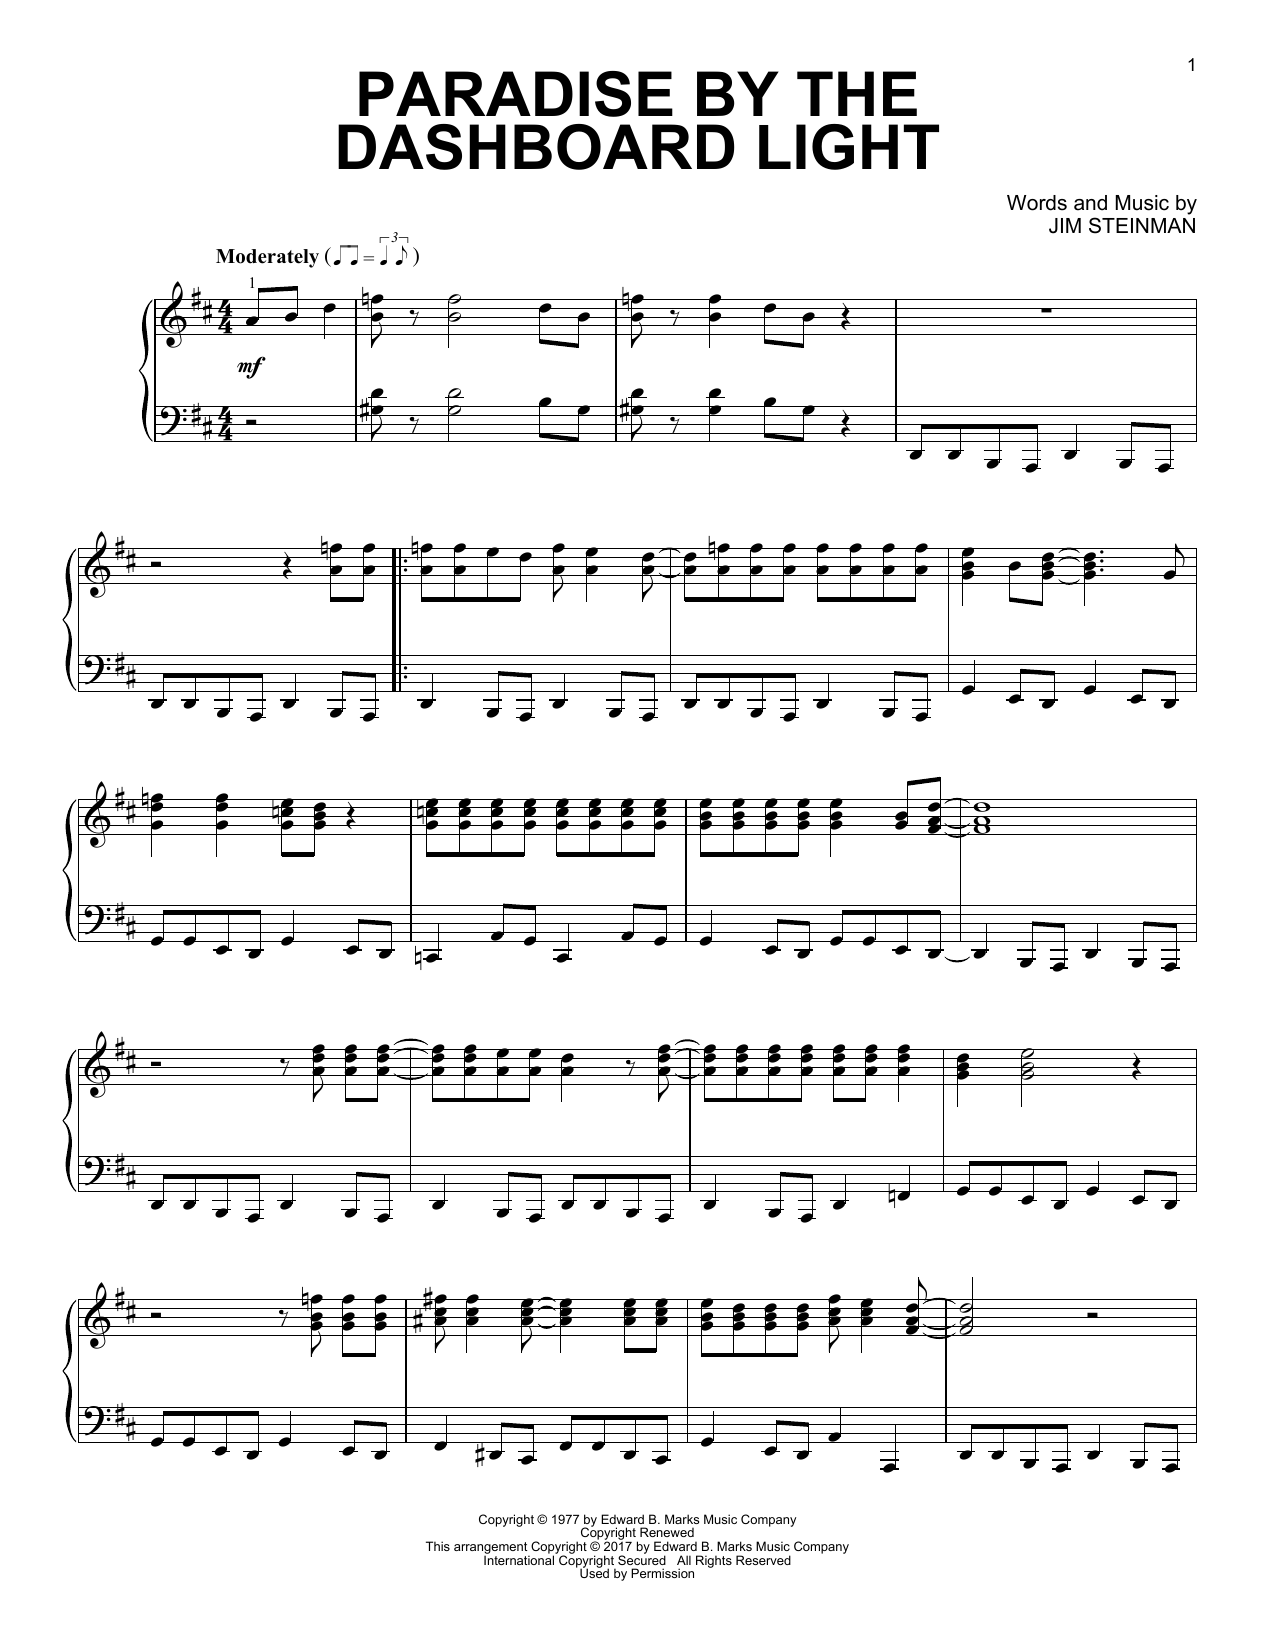 Meat Loaf Paradise By The Dashboard Light sheet music notes and chords. Download Printable PDF.